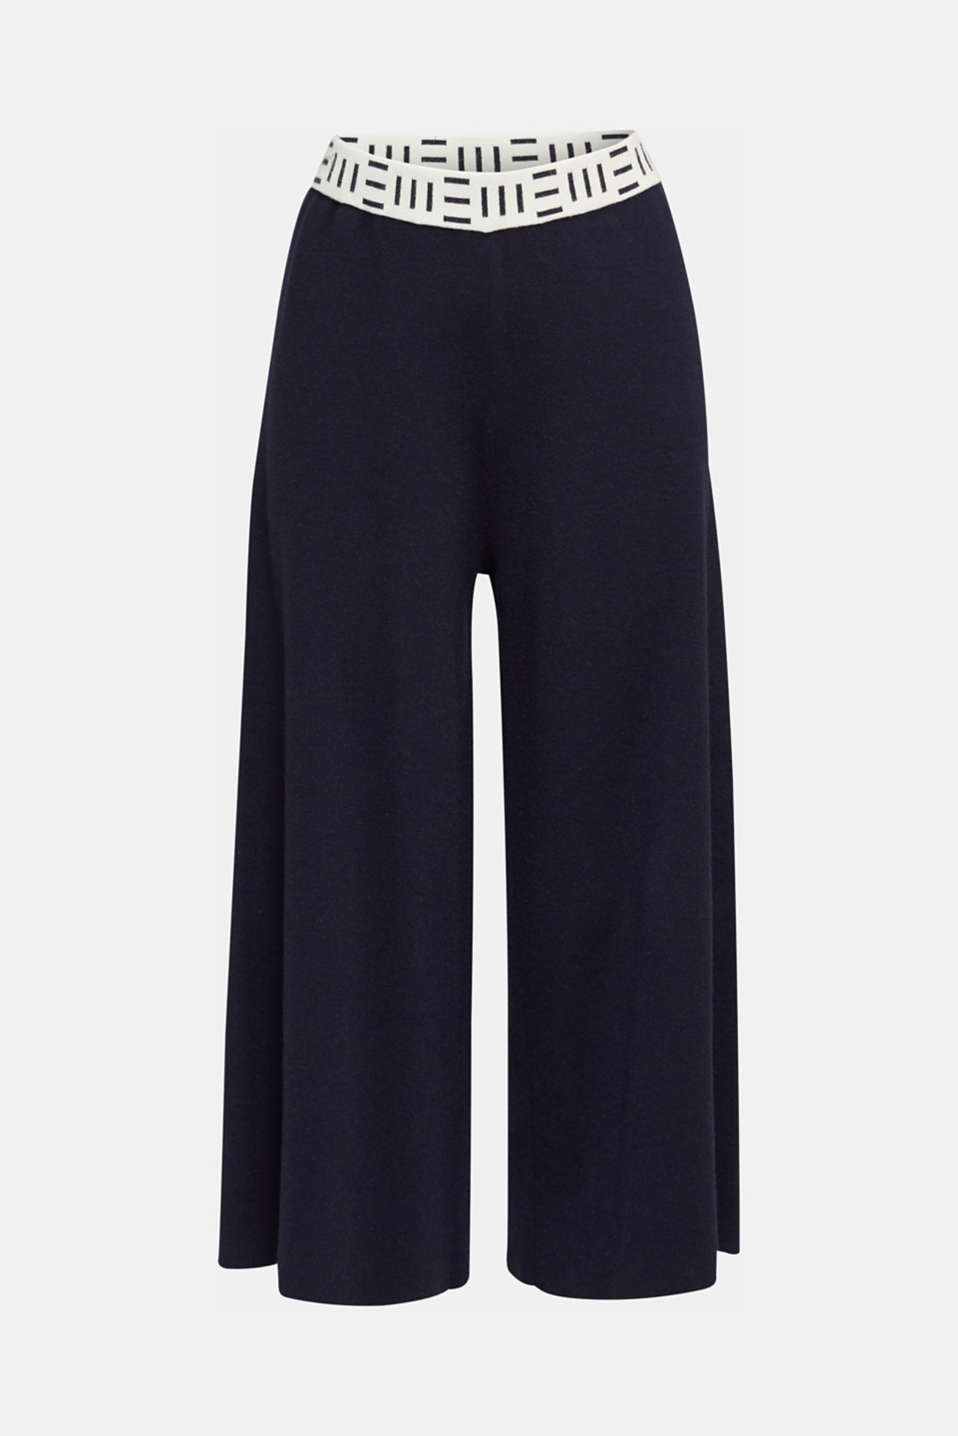 Knit culottes with a logo waistband, NAVY, detail image number 7